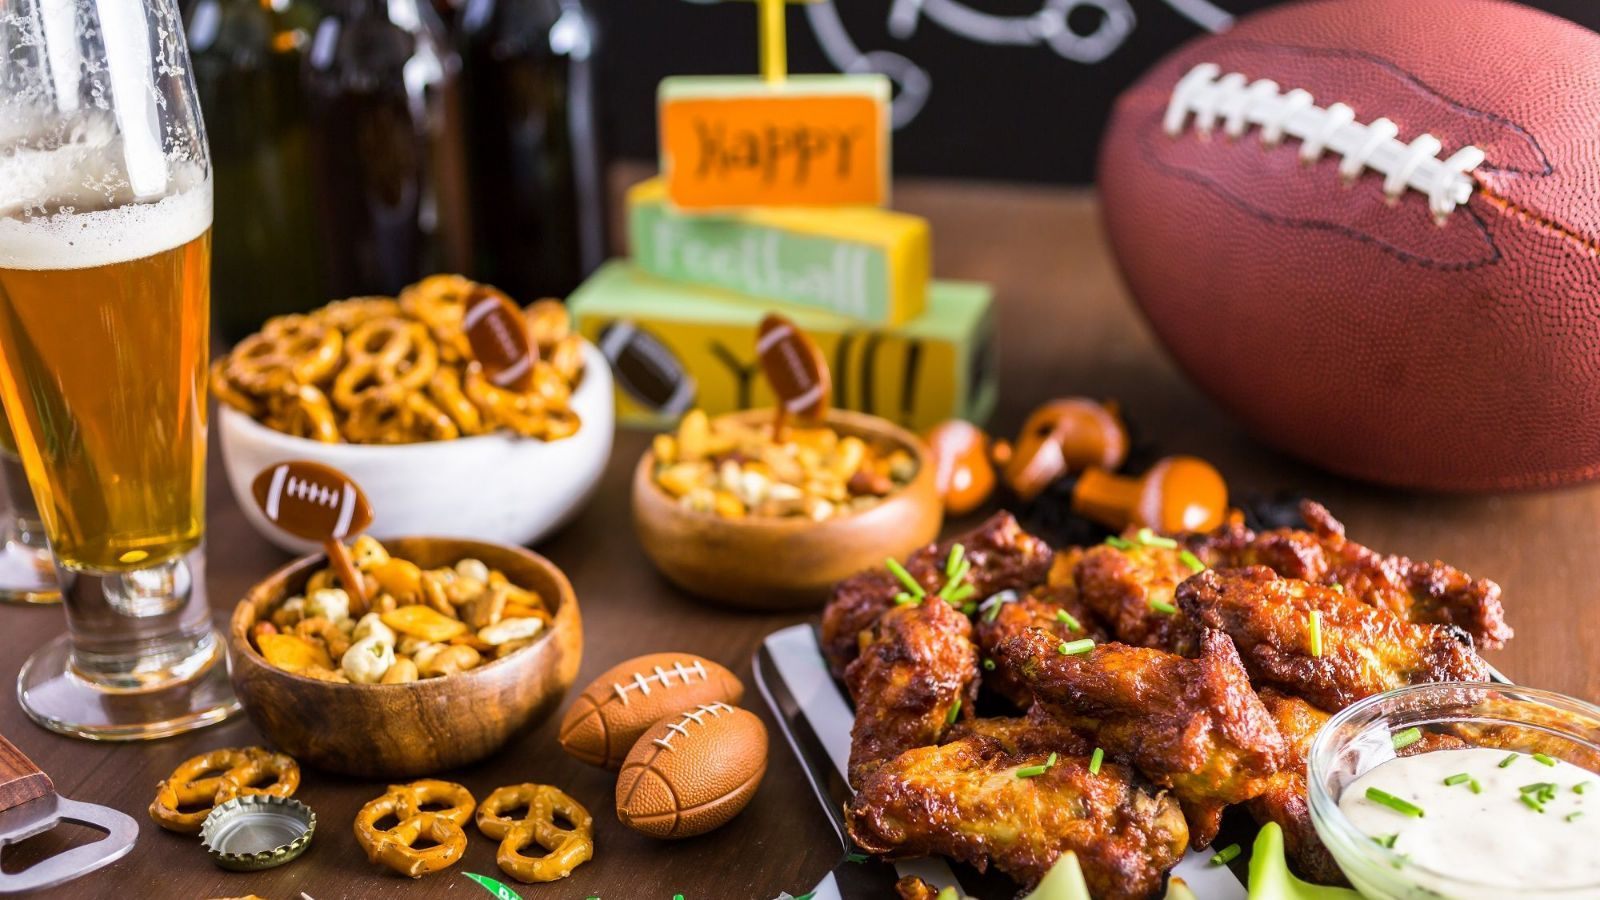 Football appetizers